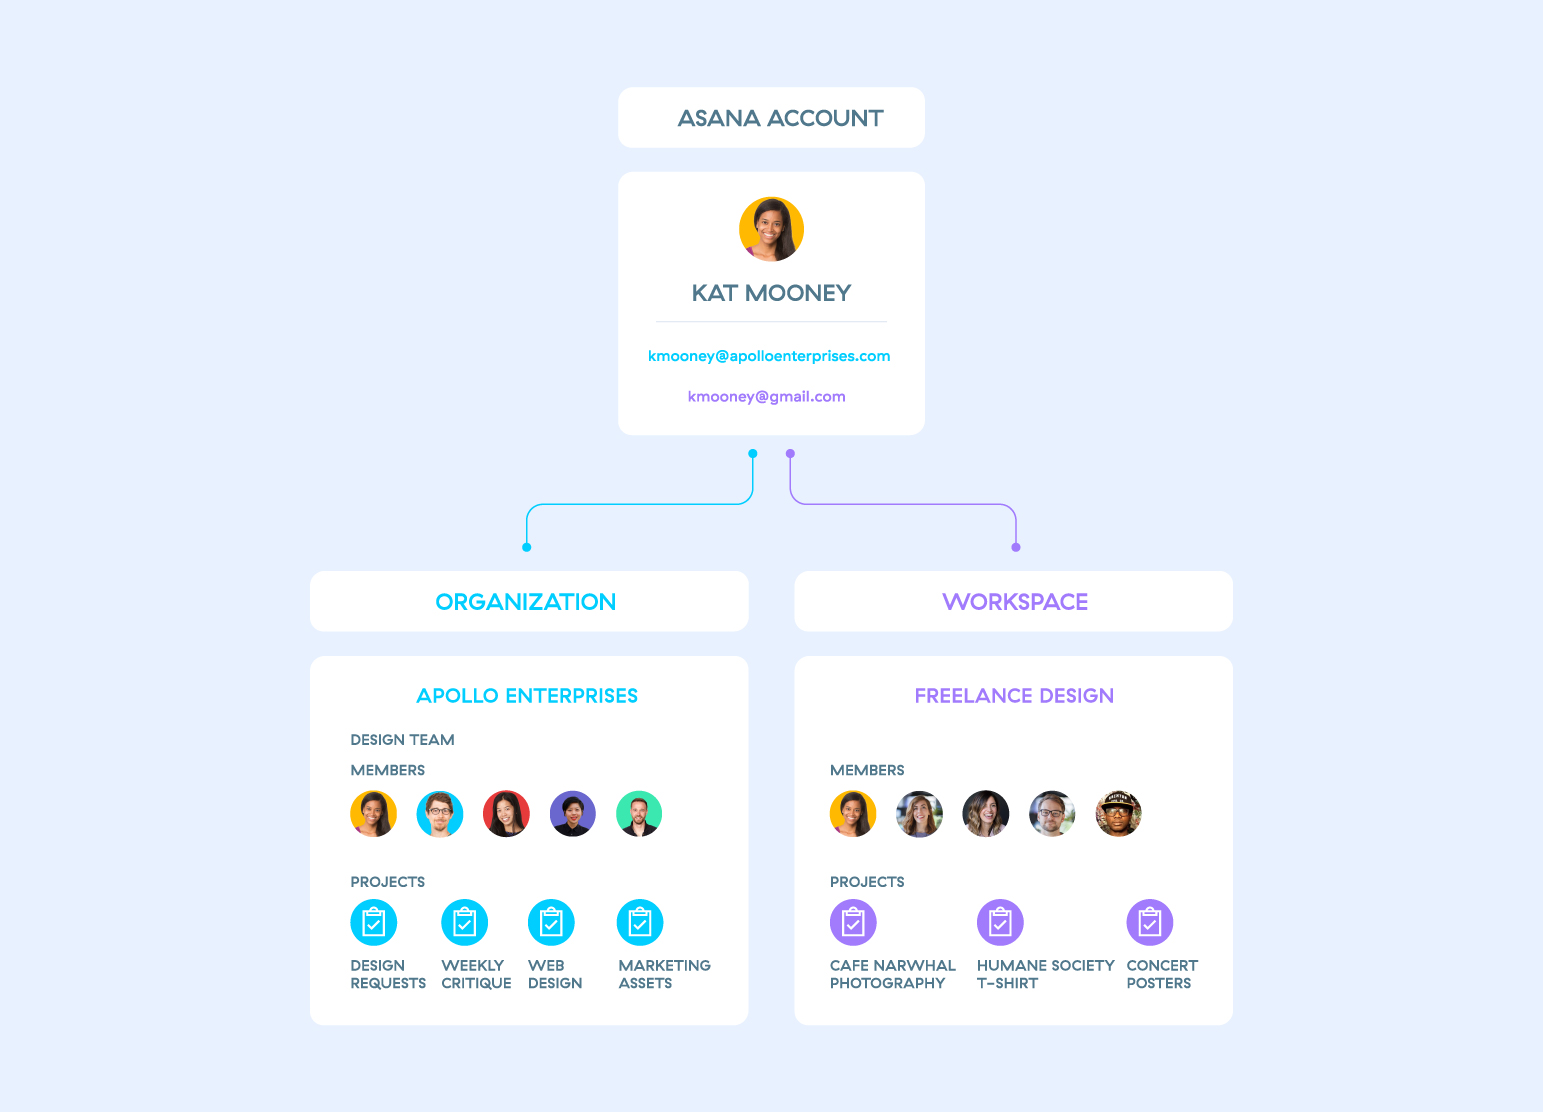 Asana workspace and organization layout